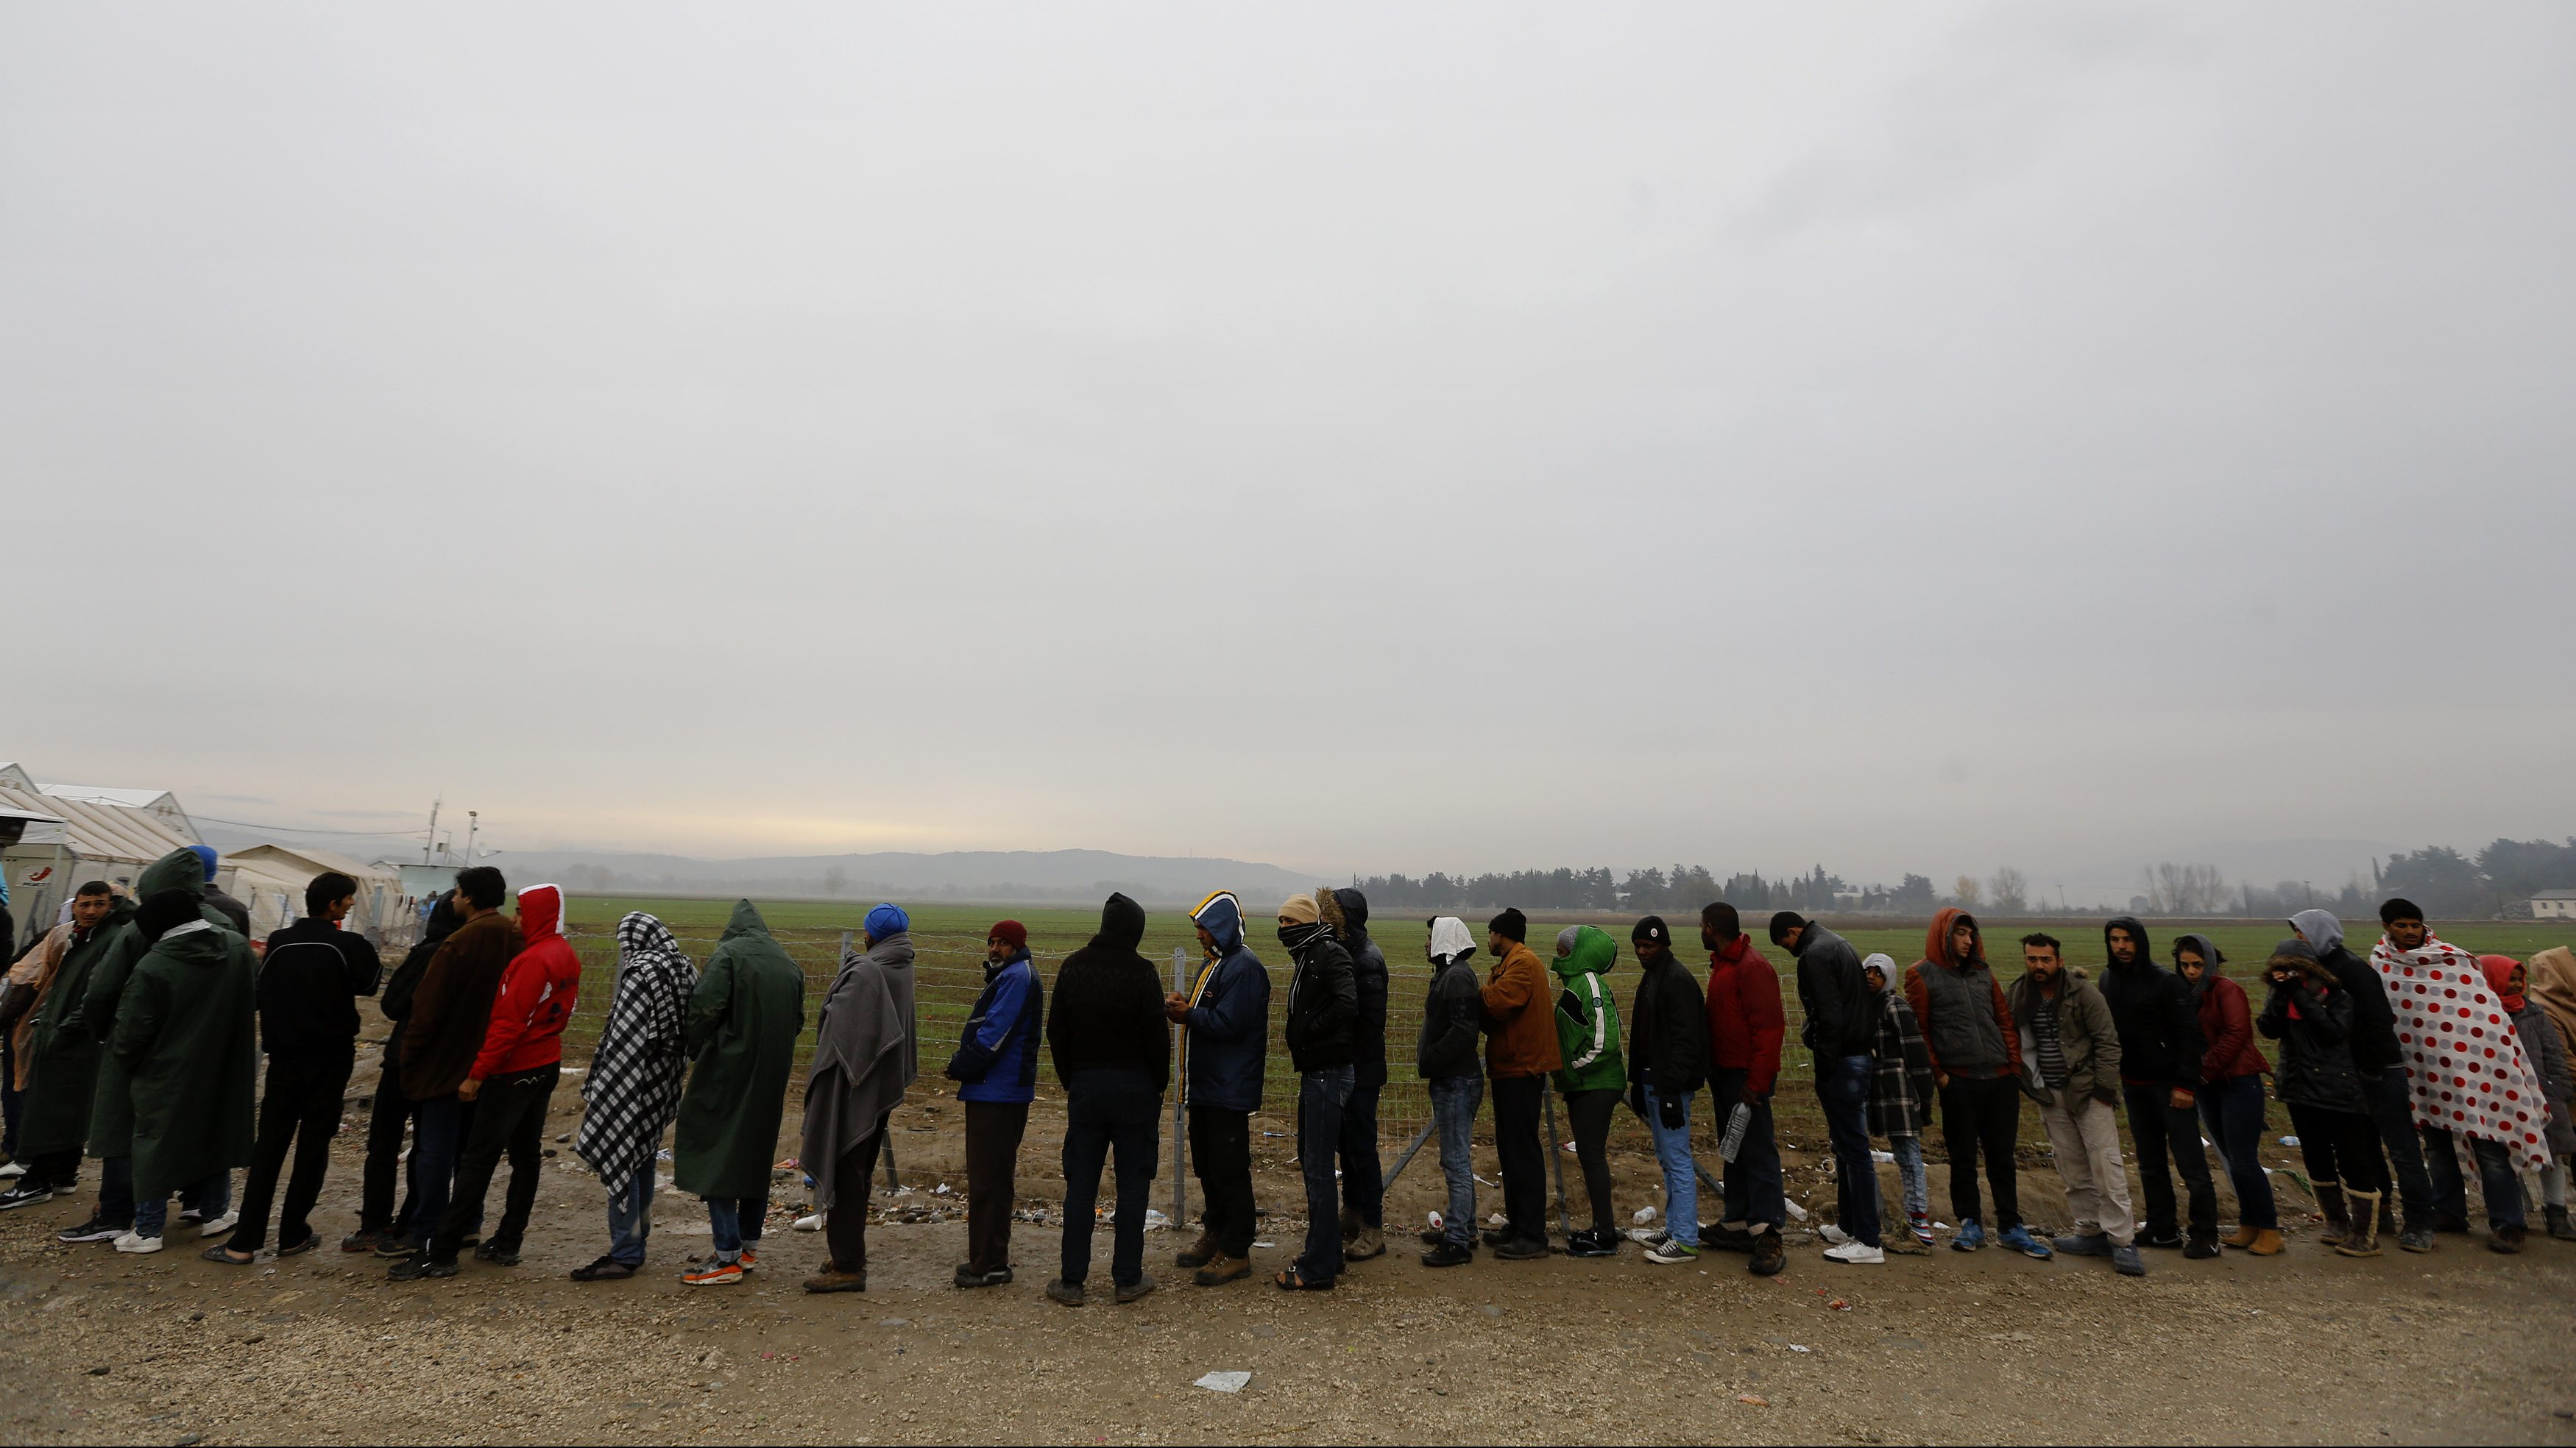 Hundreds of stranded migrants line up during food distribution at the Greek-Macedonian border near the Greek village of Idomeni